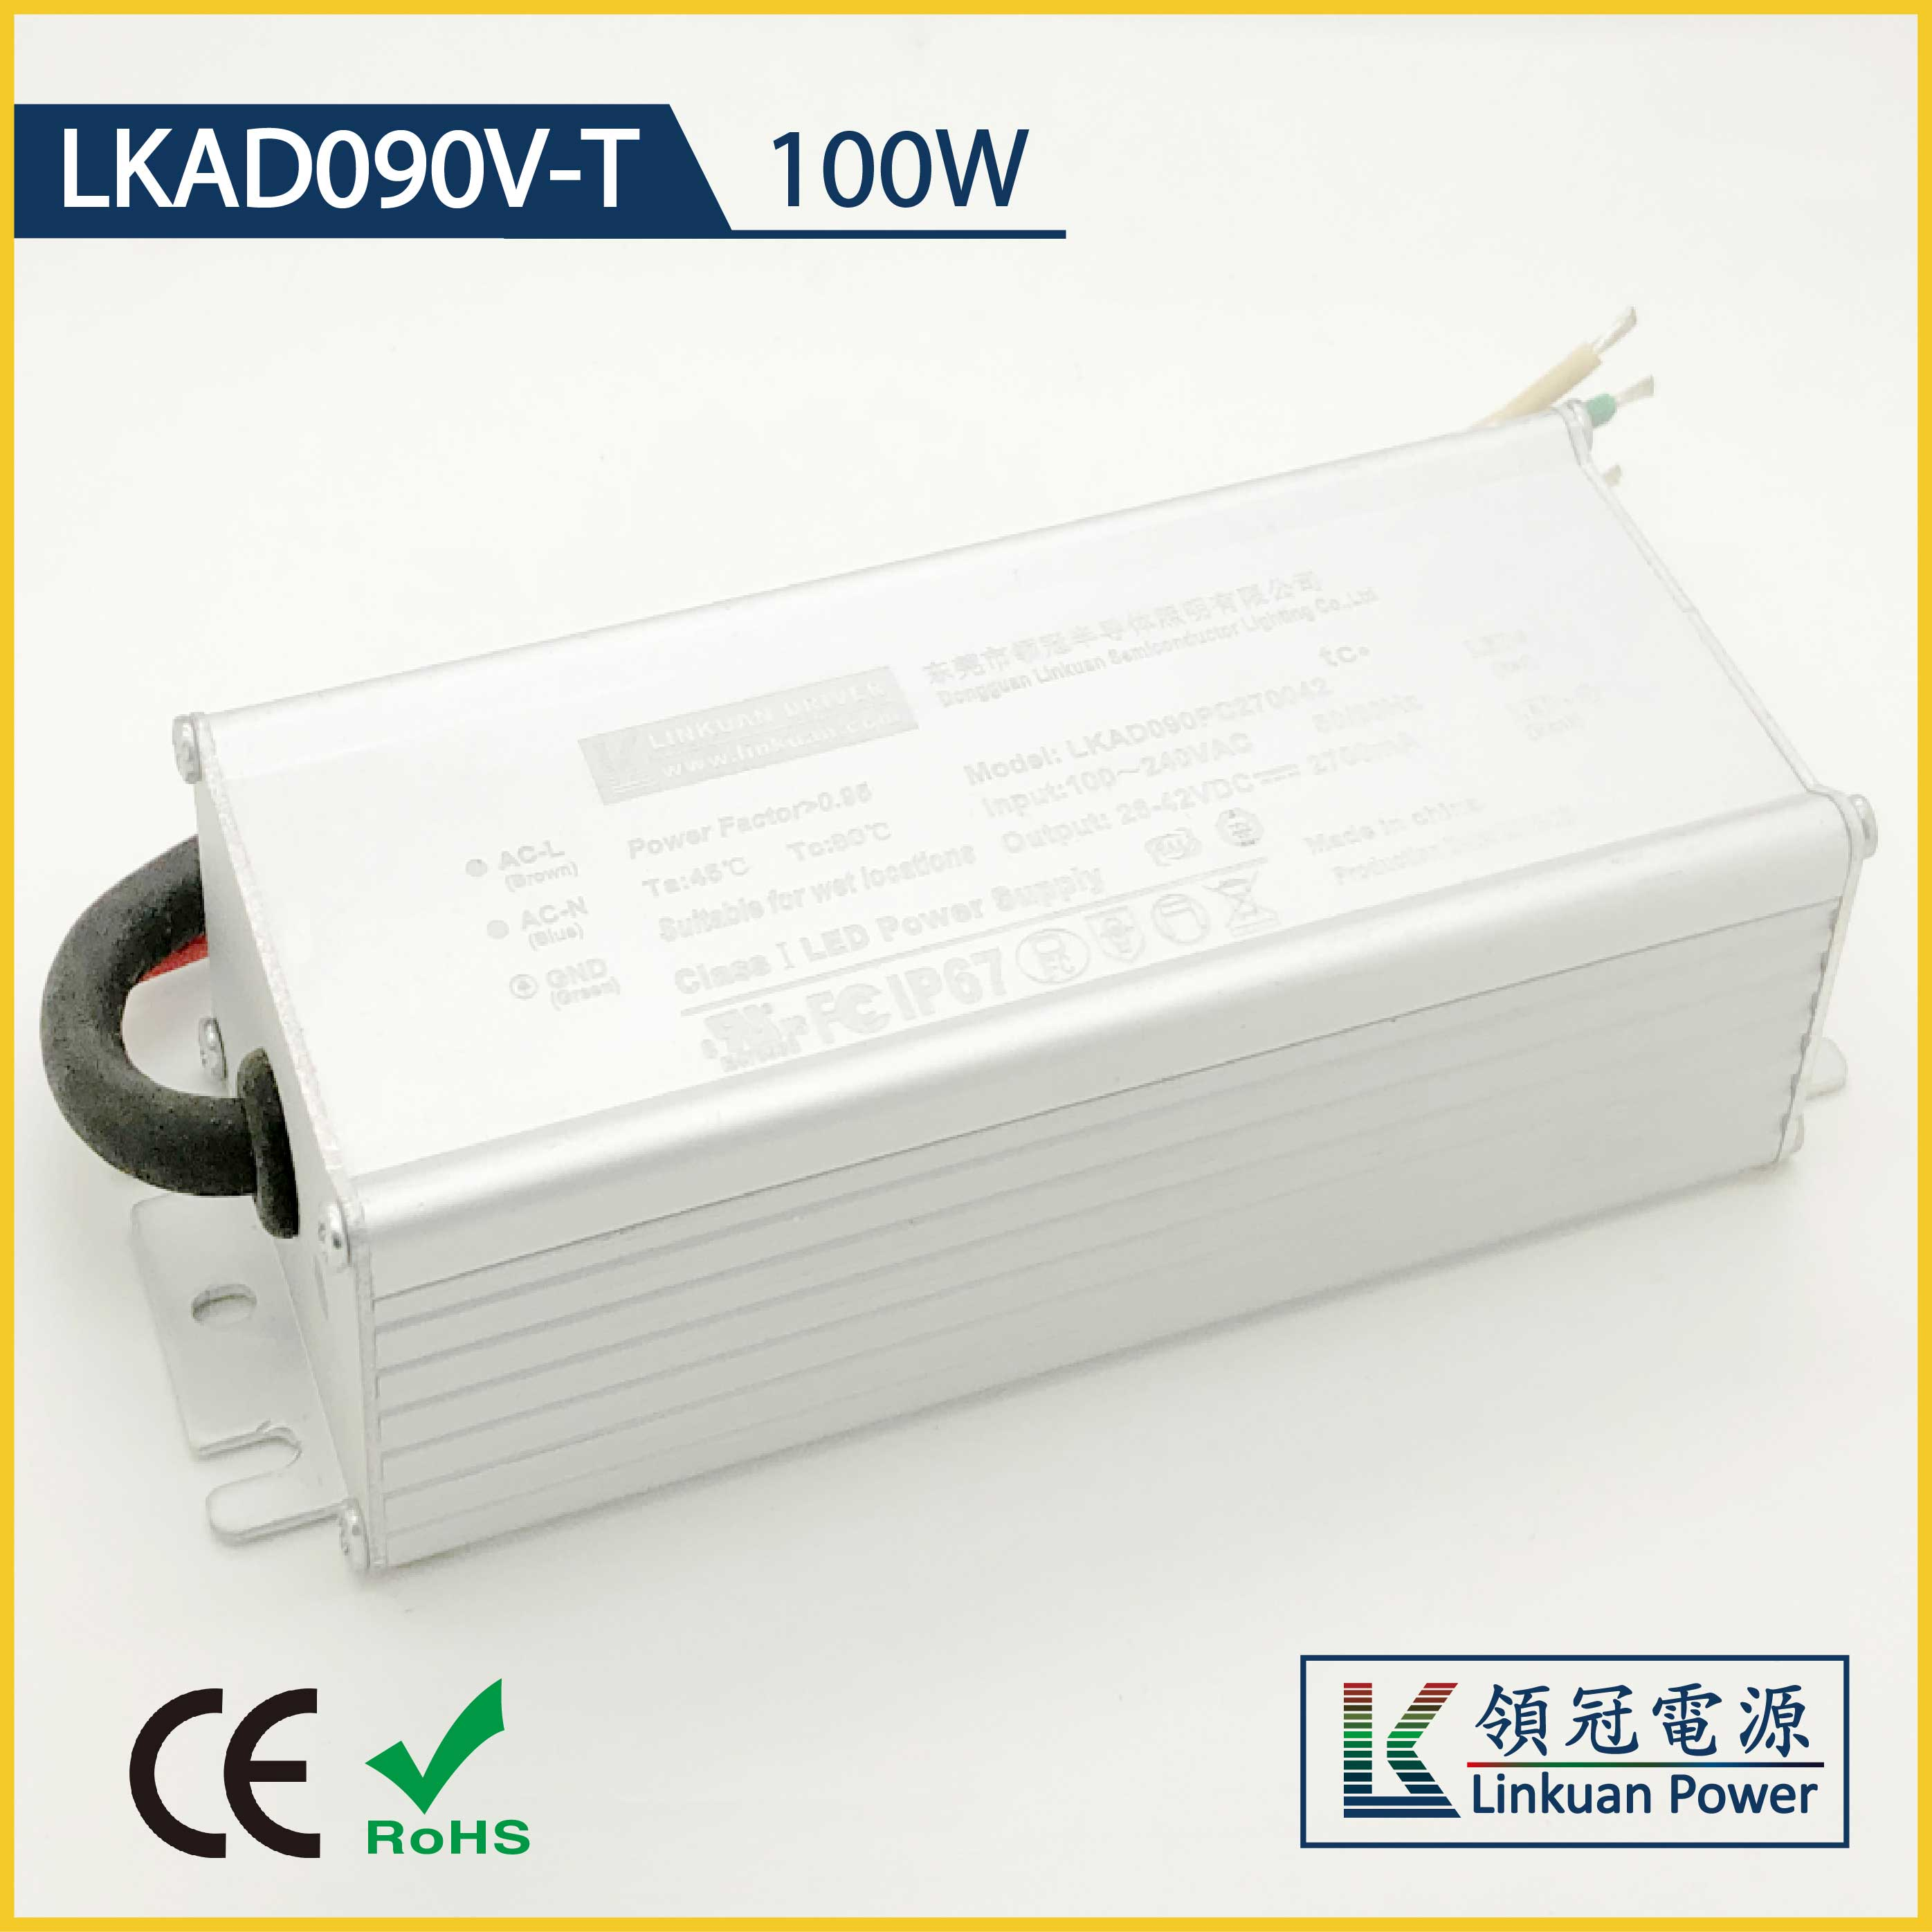 LKAD090V-TD 60W constant voltage 12/24V 10A/5A triac dimmable led driver